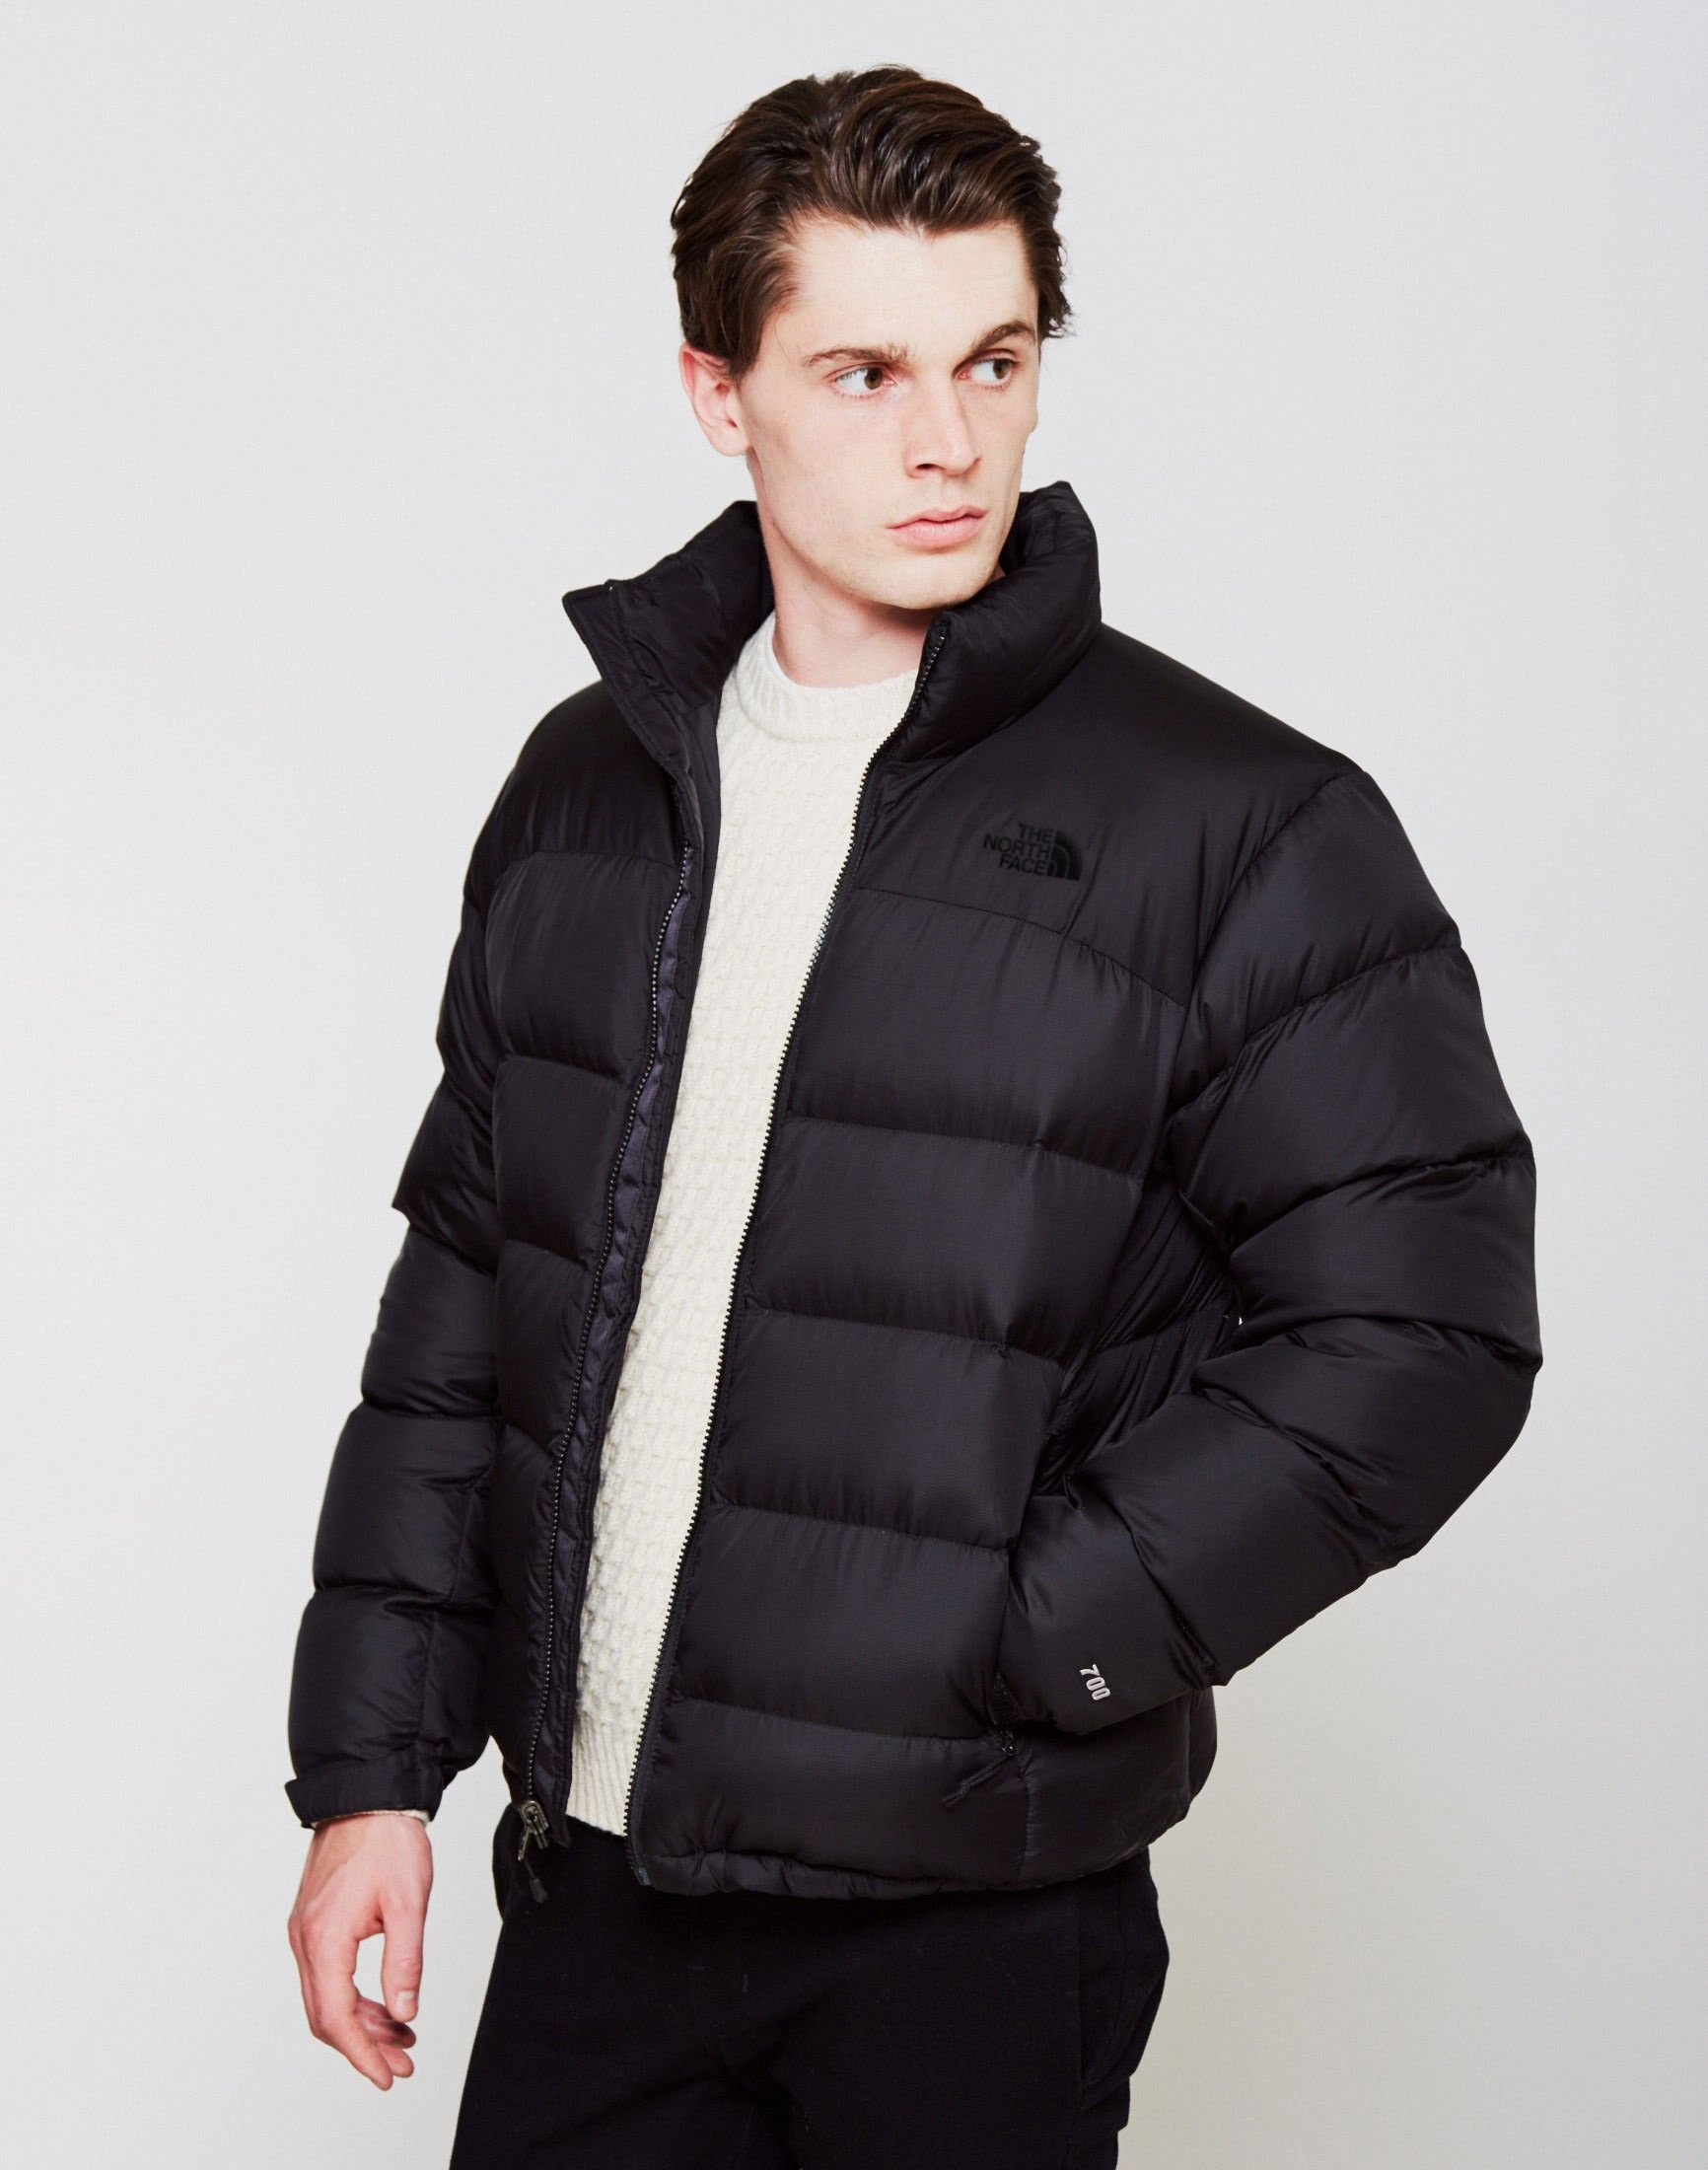 07d03c64f Shop for The North Face Nuptse 2 Jacket, Find the latest menswear ...